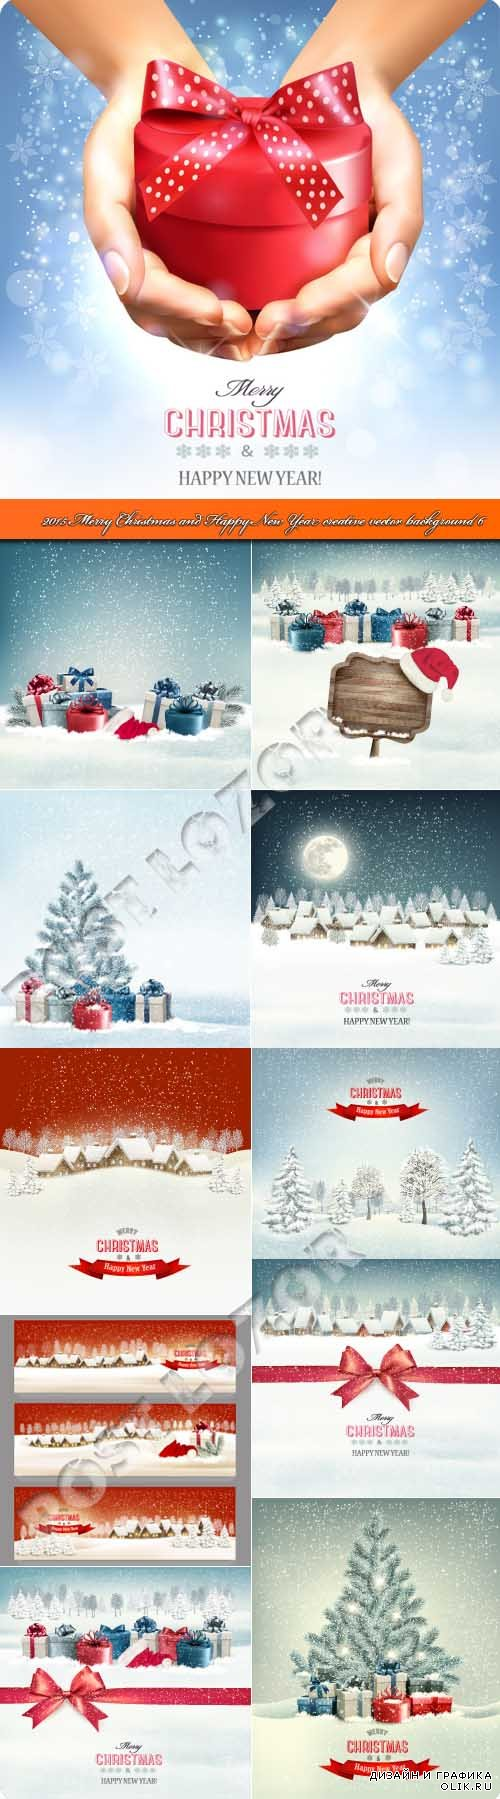 2015 Merry Christmas and Happy New Year creative vector background 6